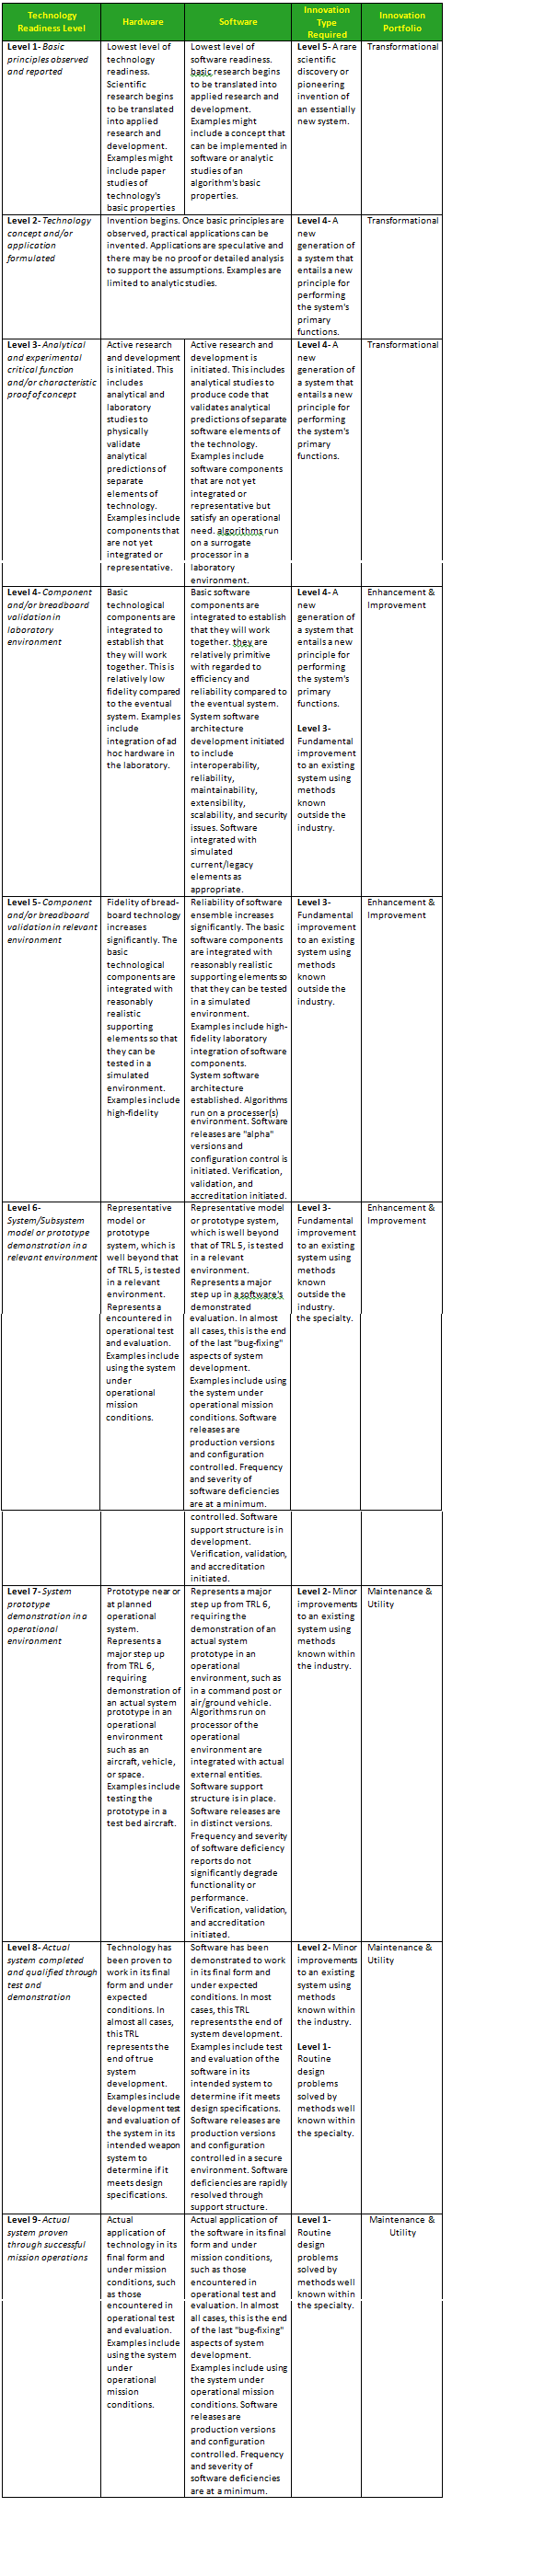 Technology Readiness and Innovation Alignment Table